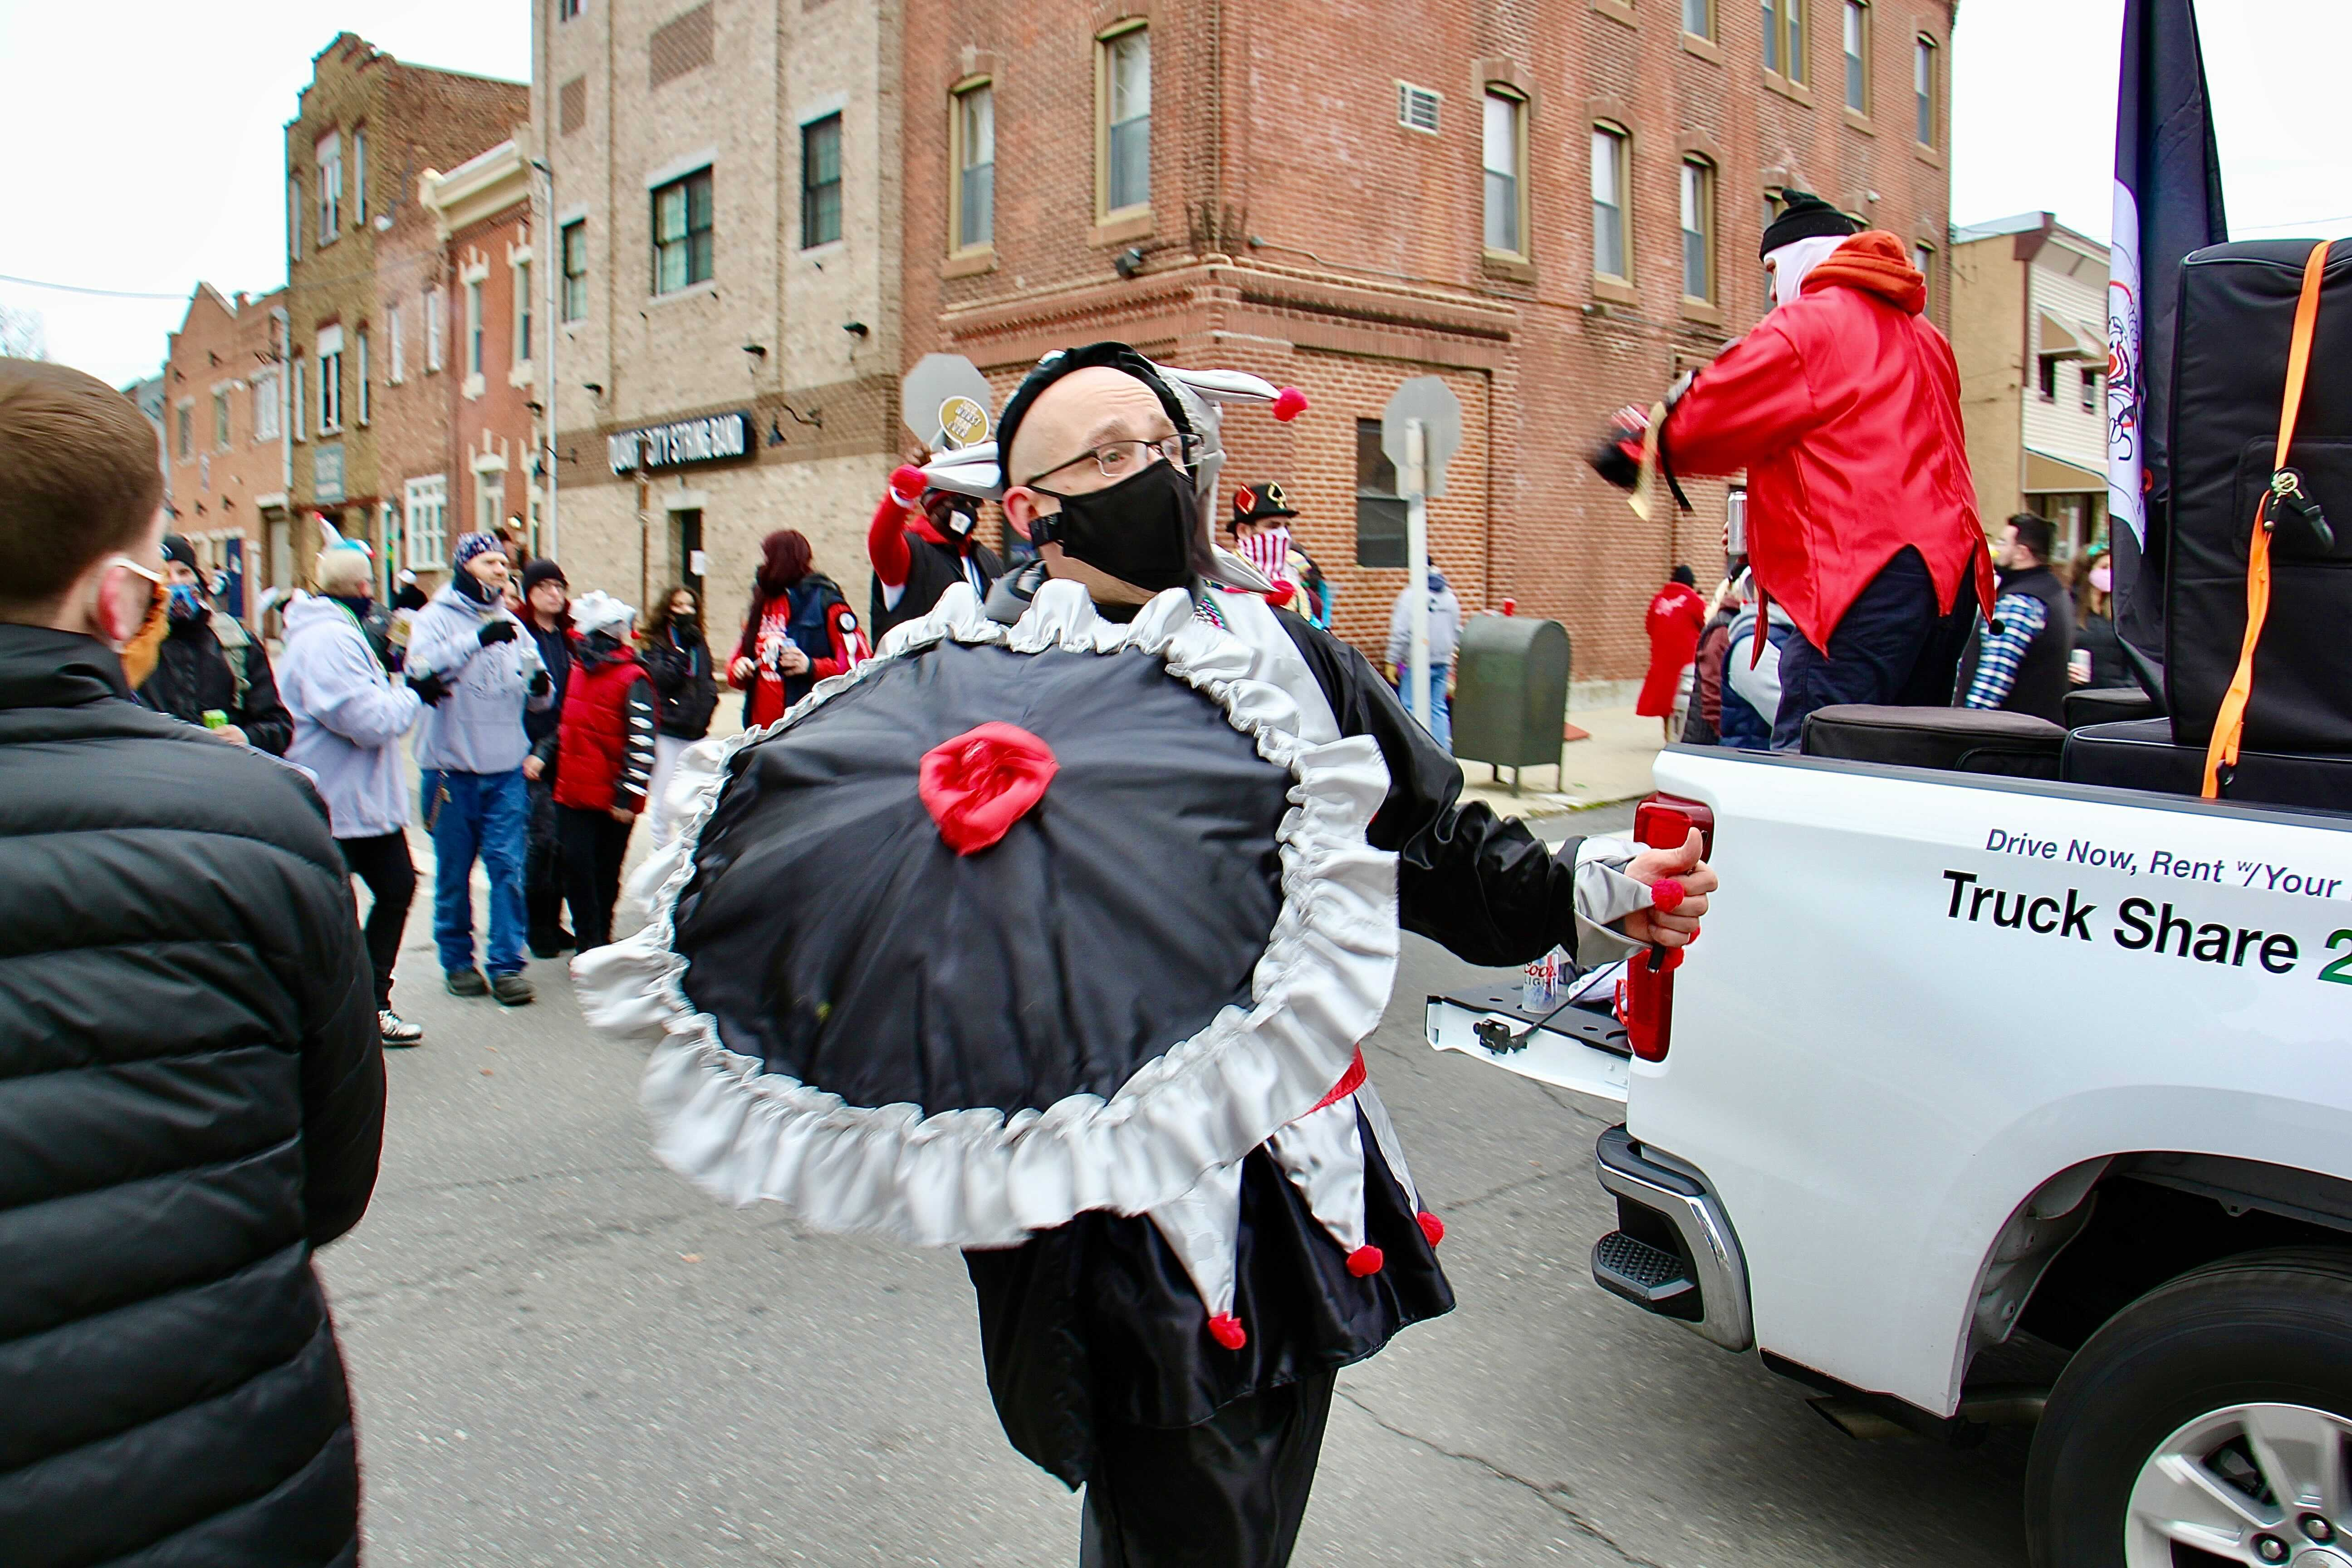 Mummers march on 3rd Street in protest of the cancellation of their annual New Year's Day parade.